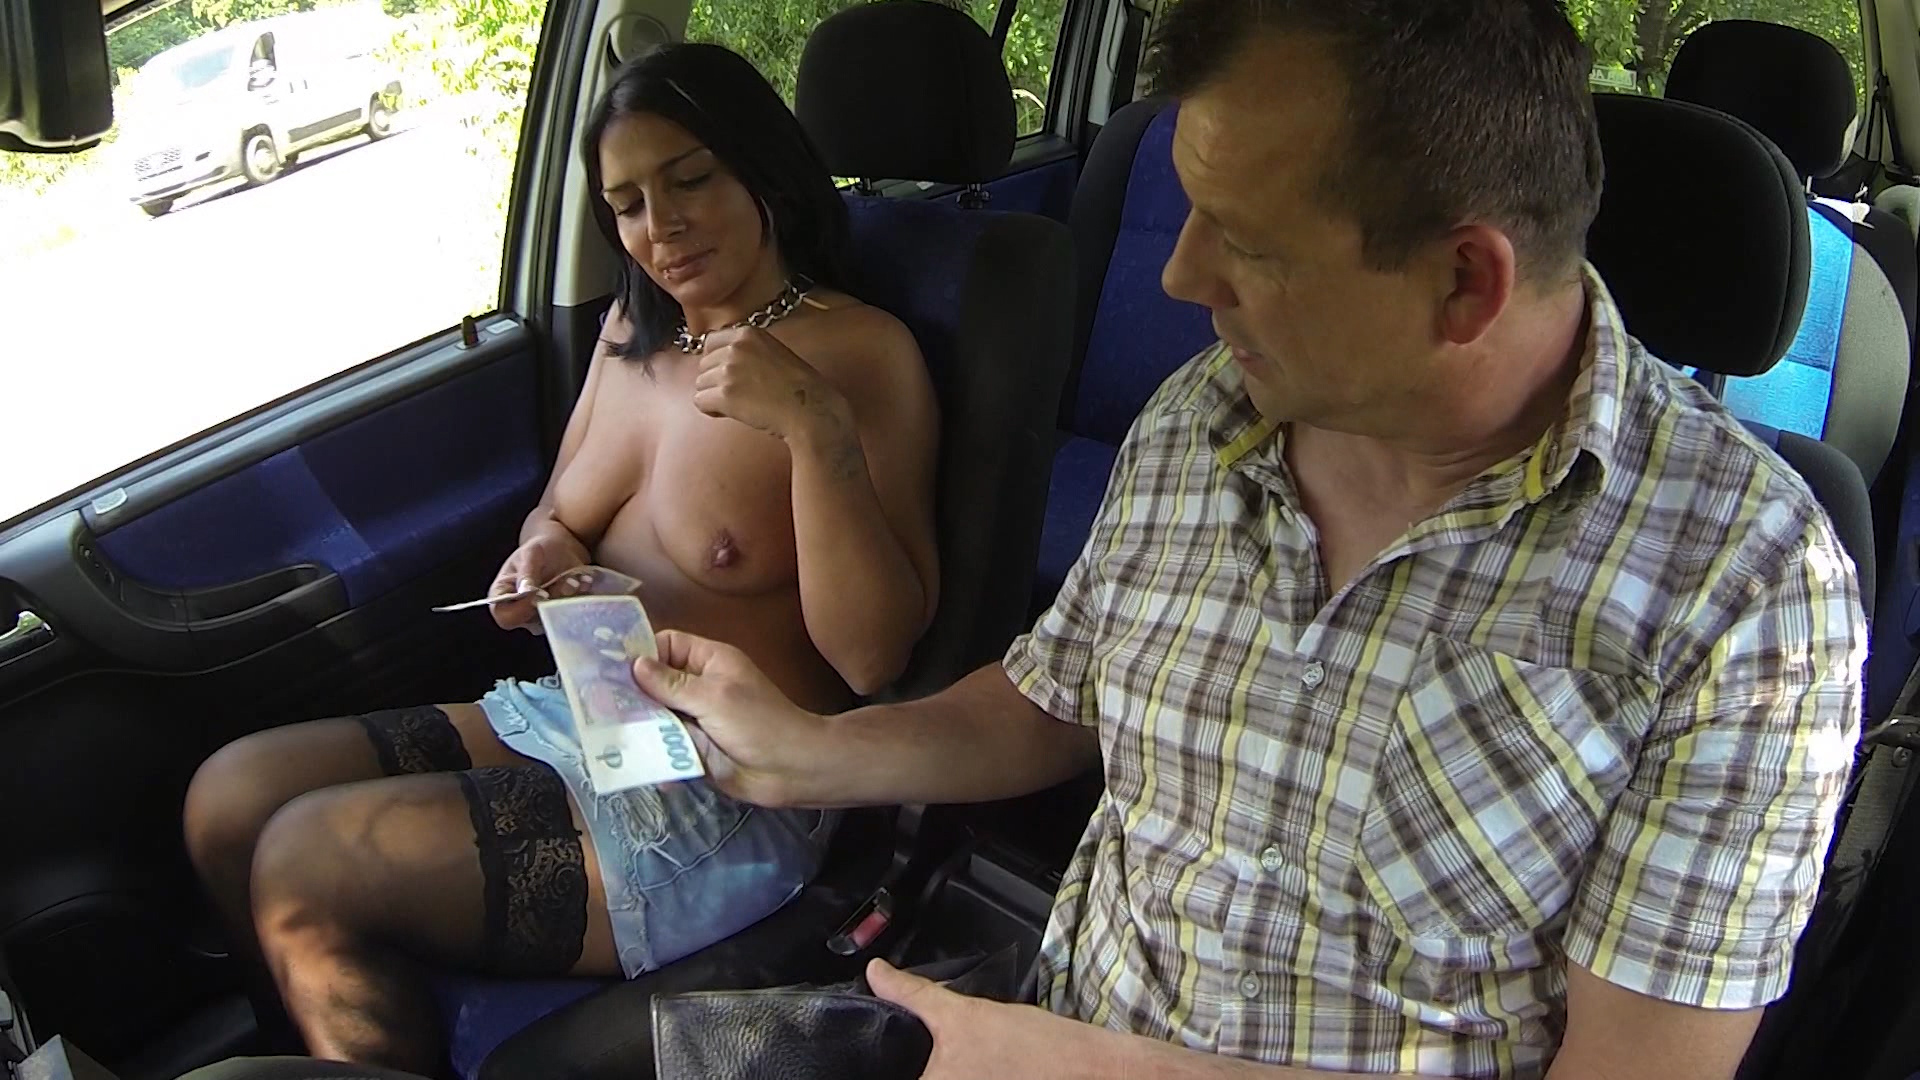 Old Czech Bitch fucked in the car – real czech hooker video